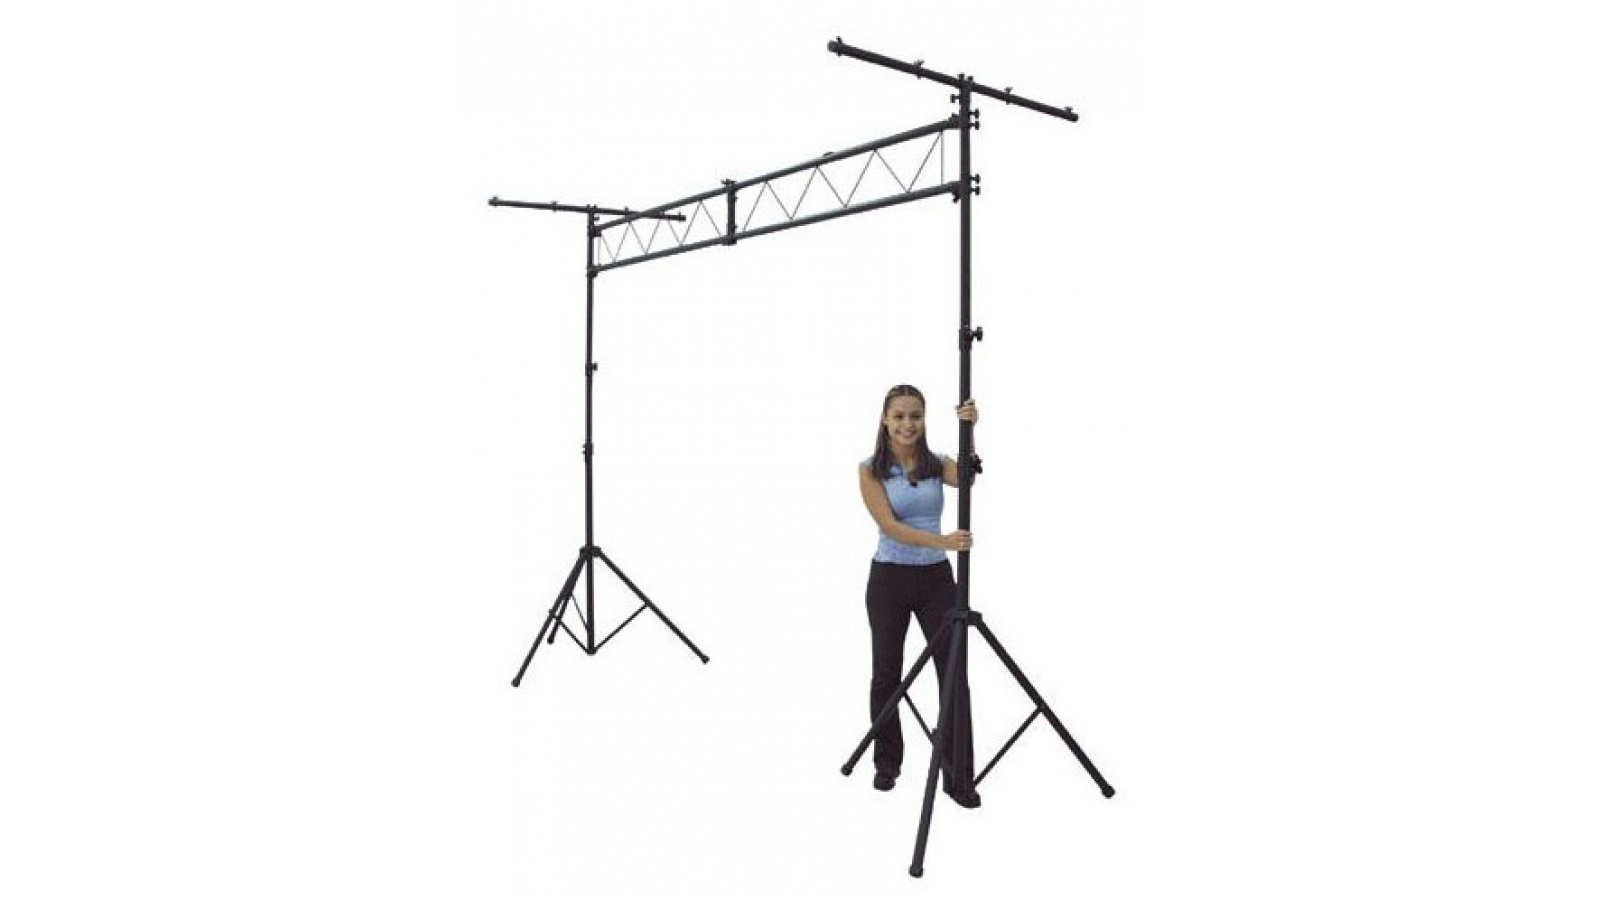 Kit 2 Pie Atril Soporte Truss Doble Pie con Cercha para Iluminación